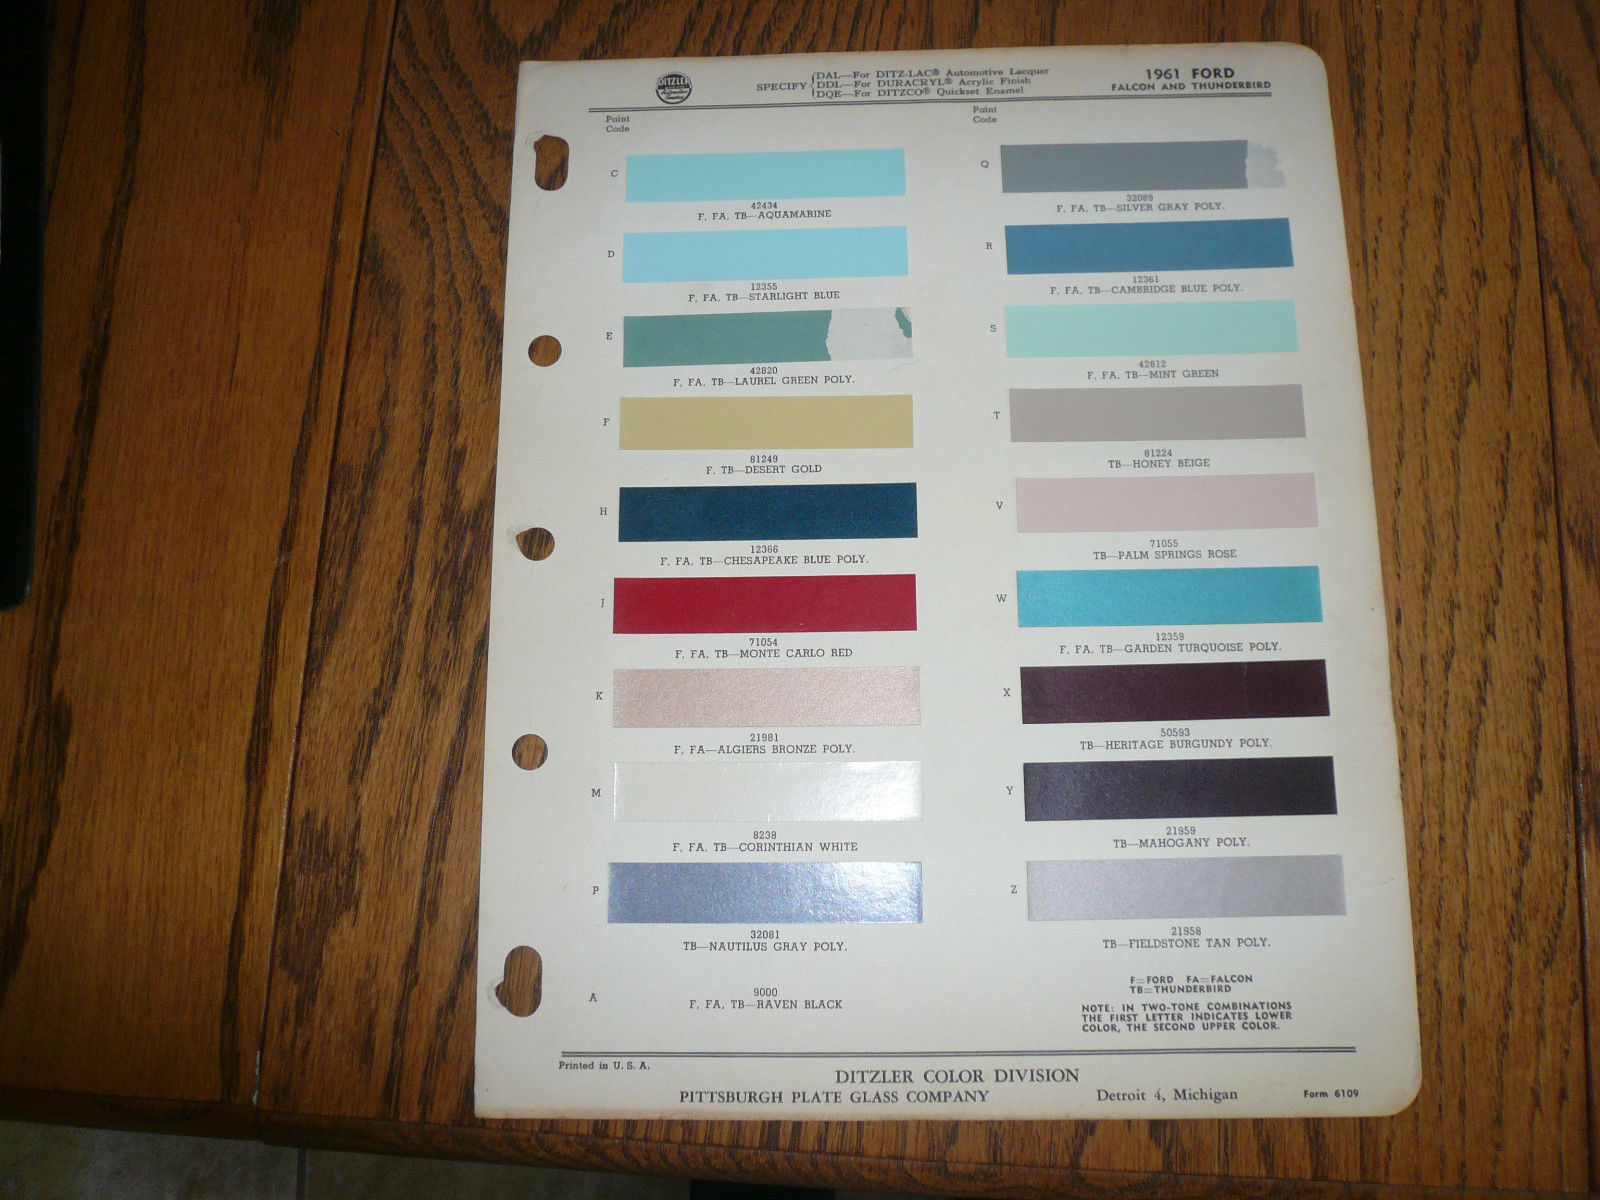 1961 Ford Ditzler Ppg Color Chip Paint And 50 Similar Items 1964 Dodge Chips Sample Falcon Thunderbird